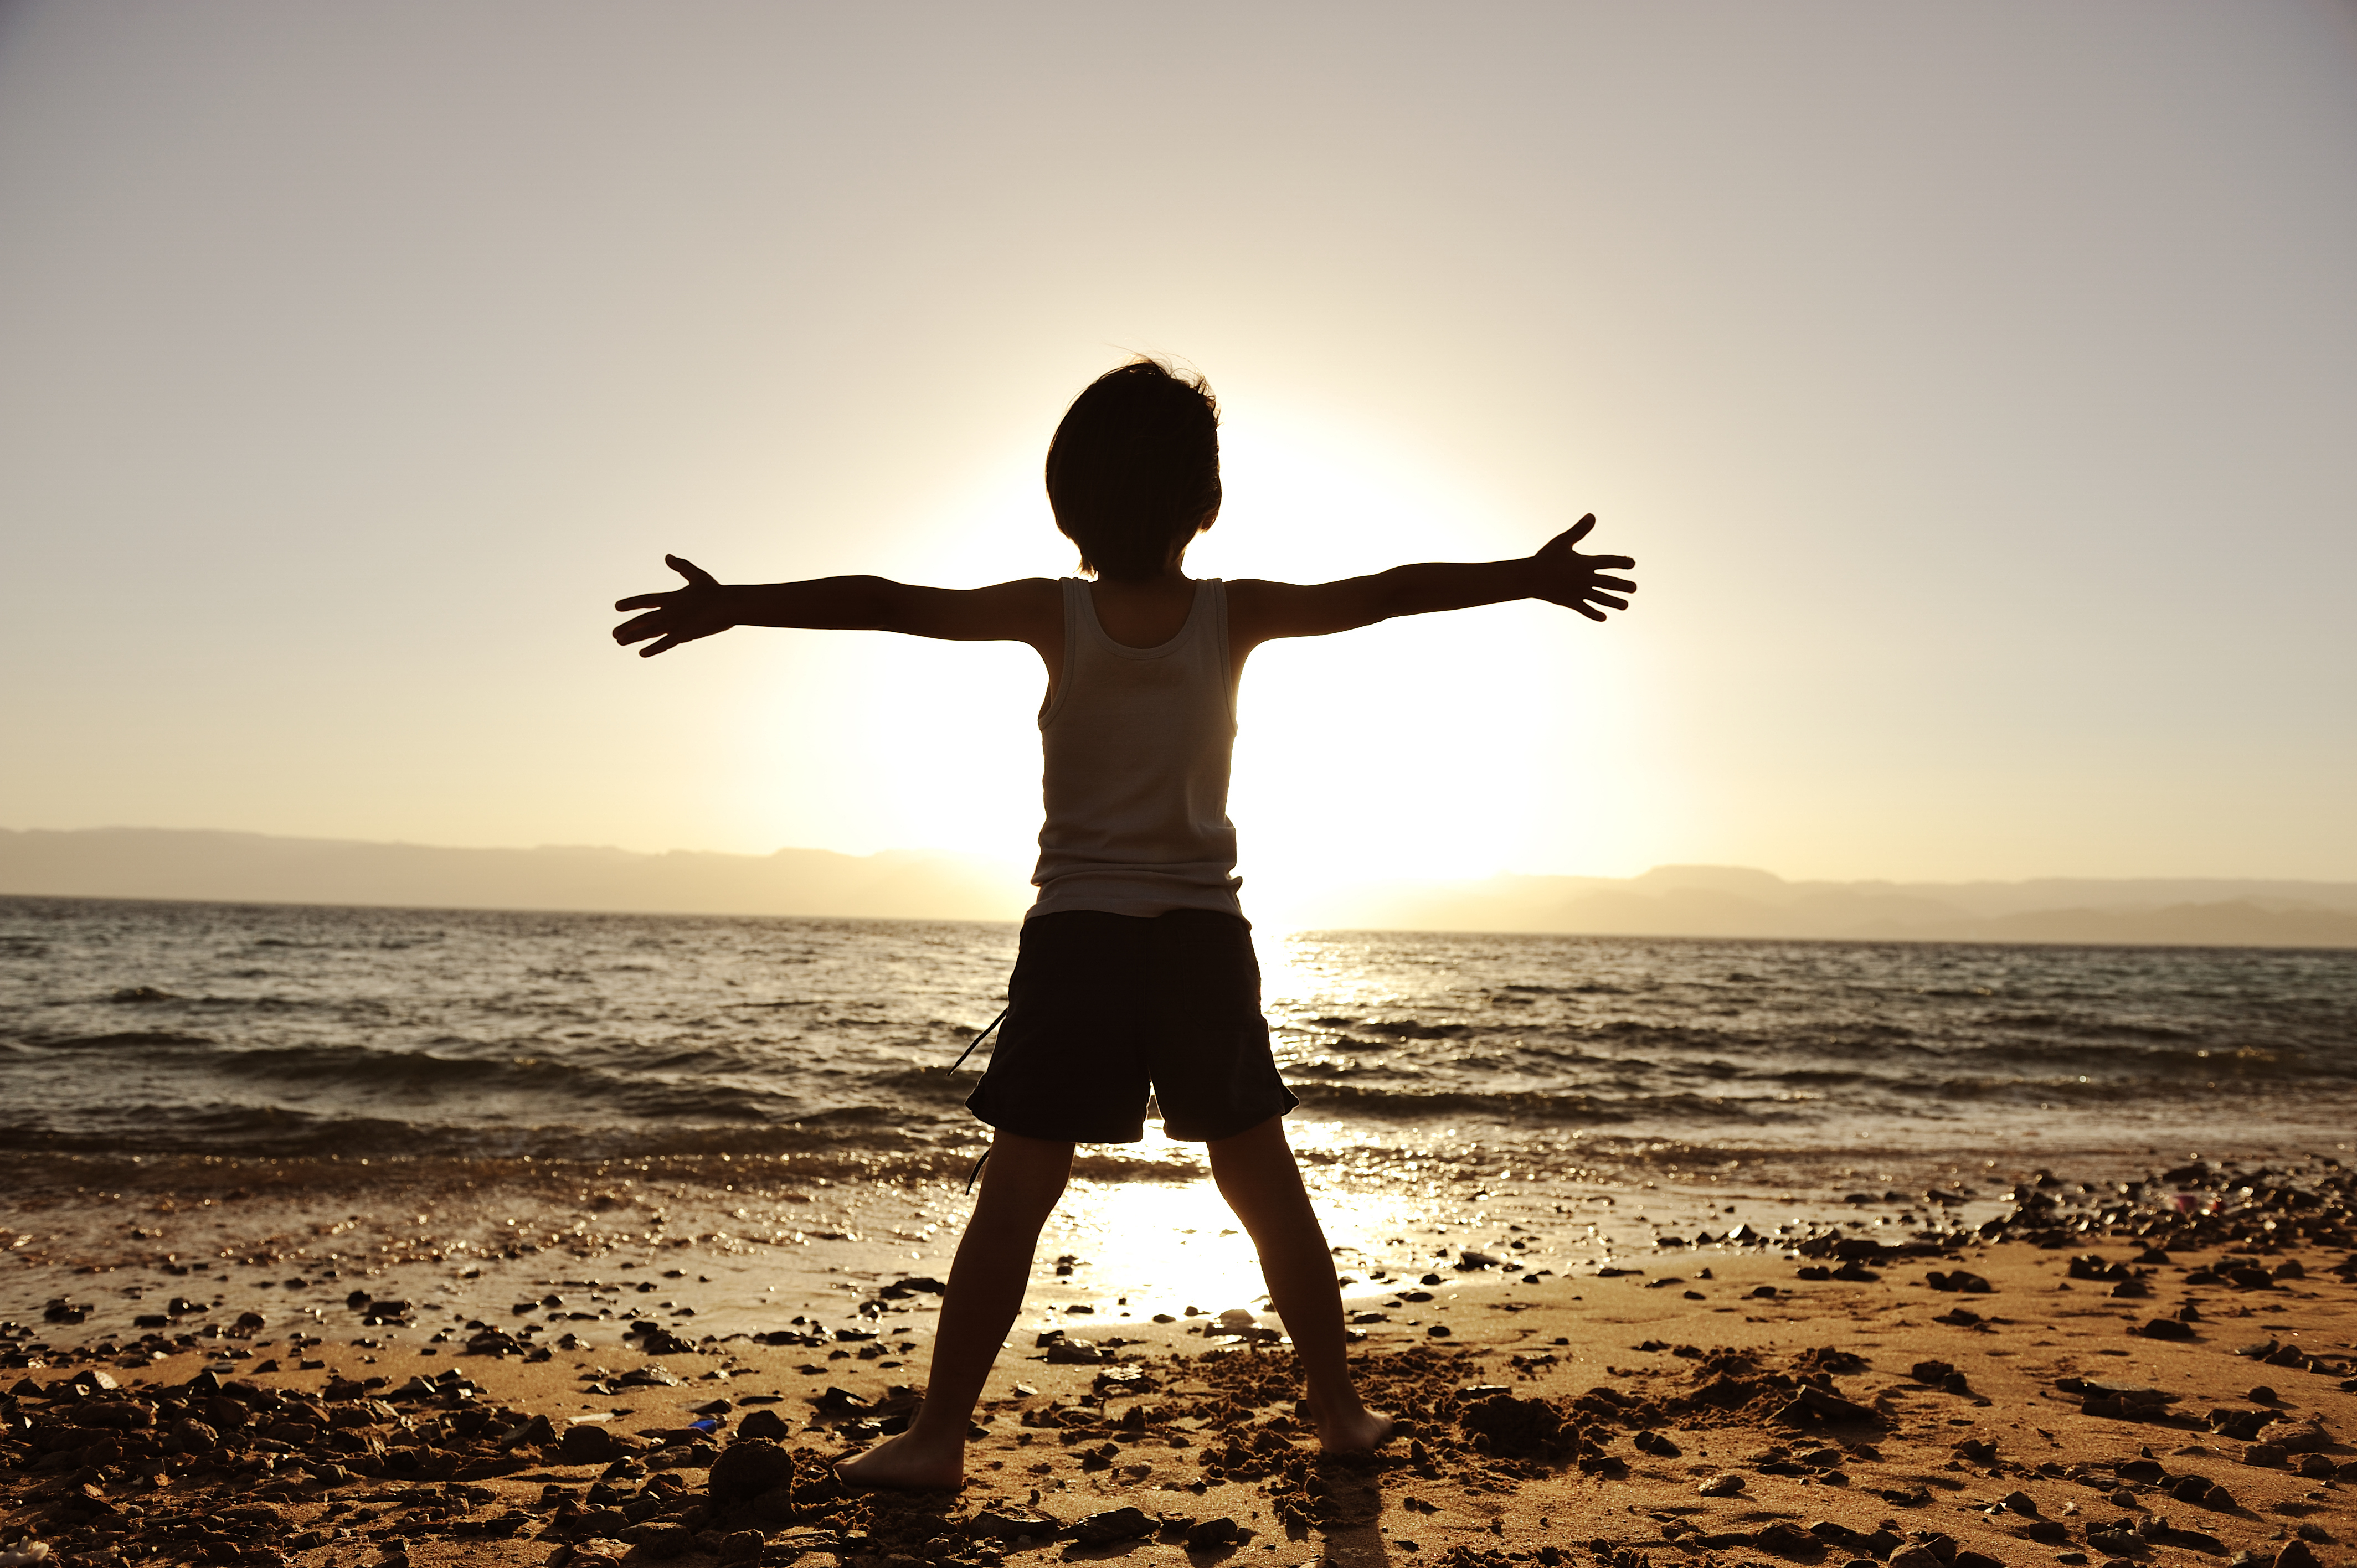 Silhouette of child on the beach, holding his hands up, hugging the su